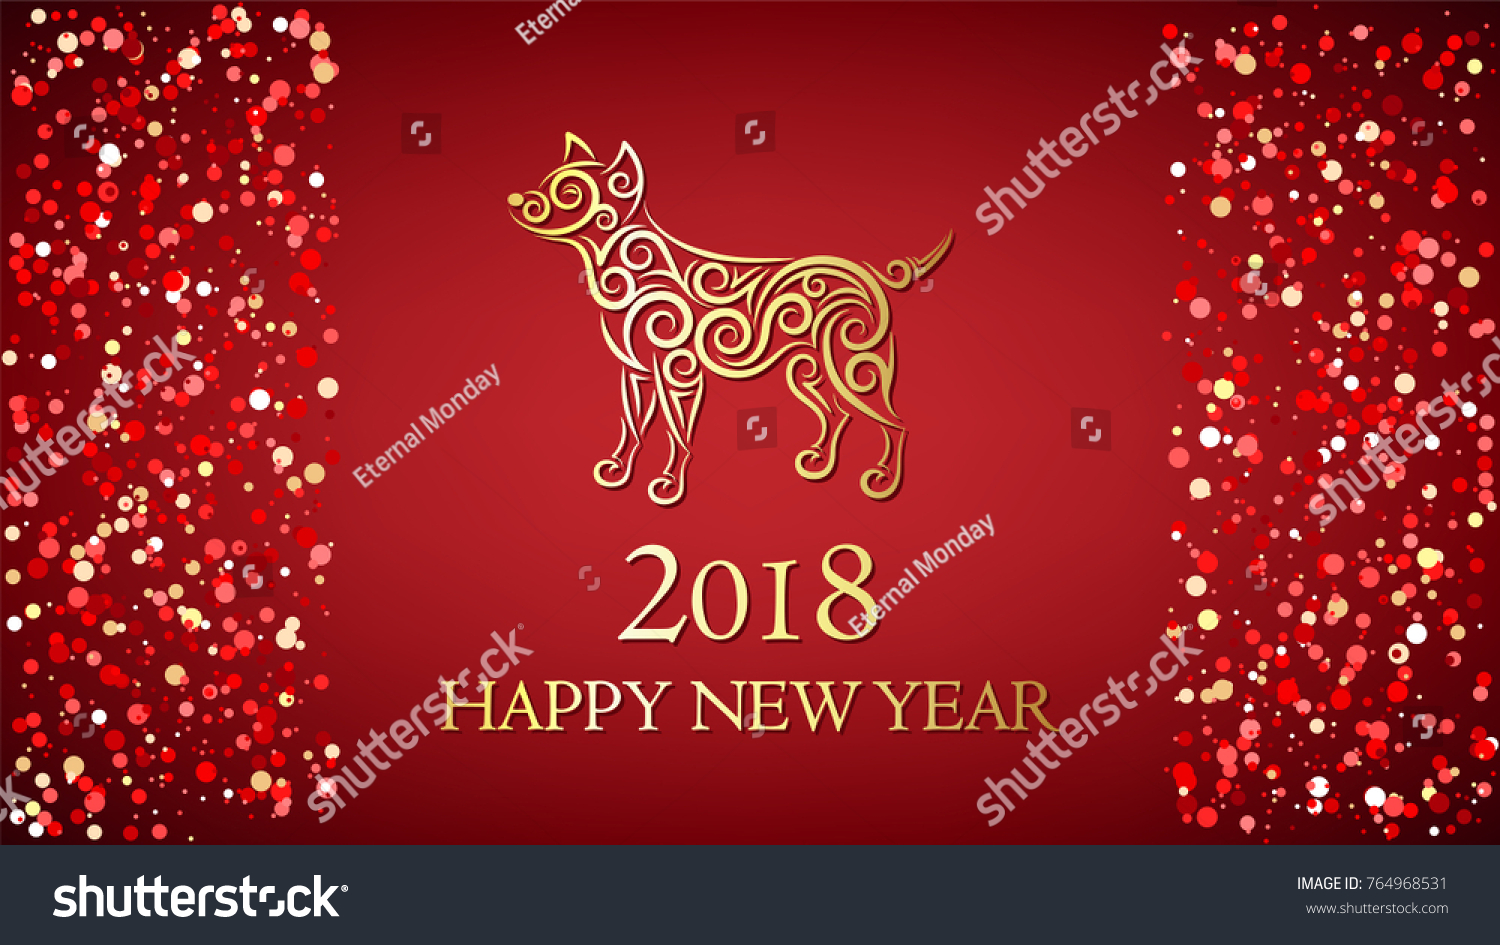 merry christmas and happy new year background with lettering dog silhouette and confetti dots